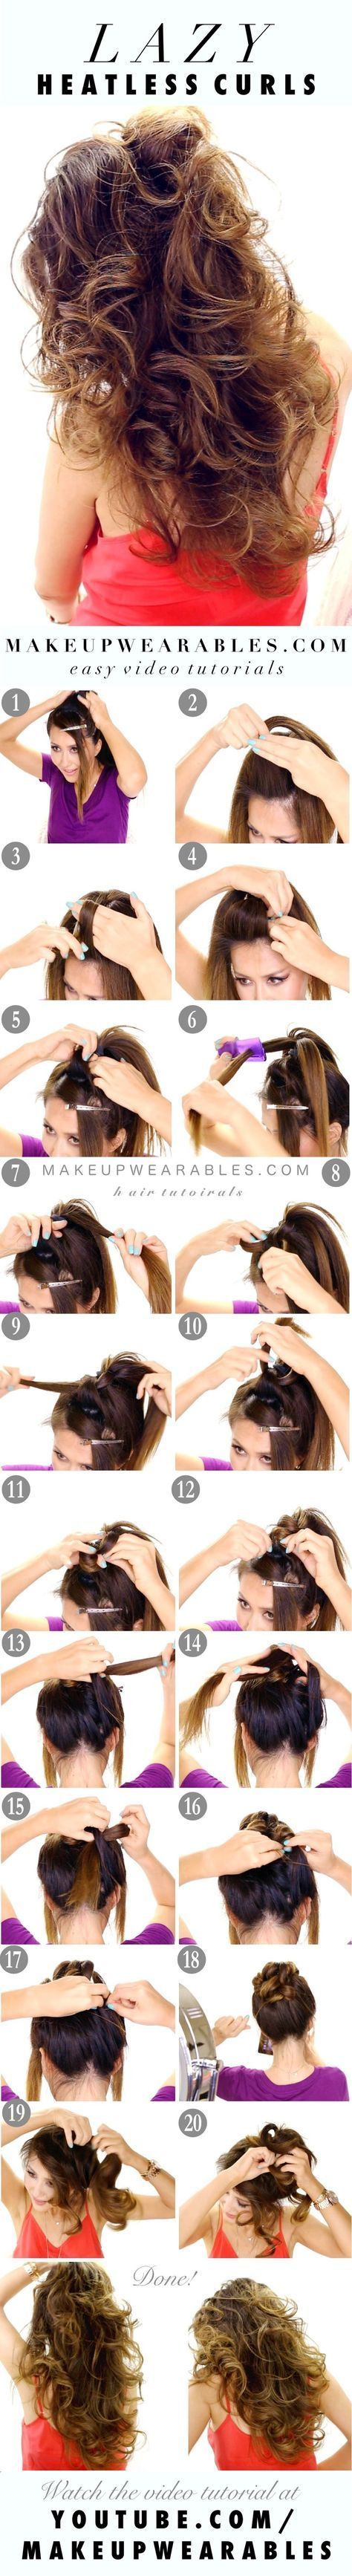 Easy lazy heatless curls overnight – no heat waves #hairstyles